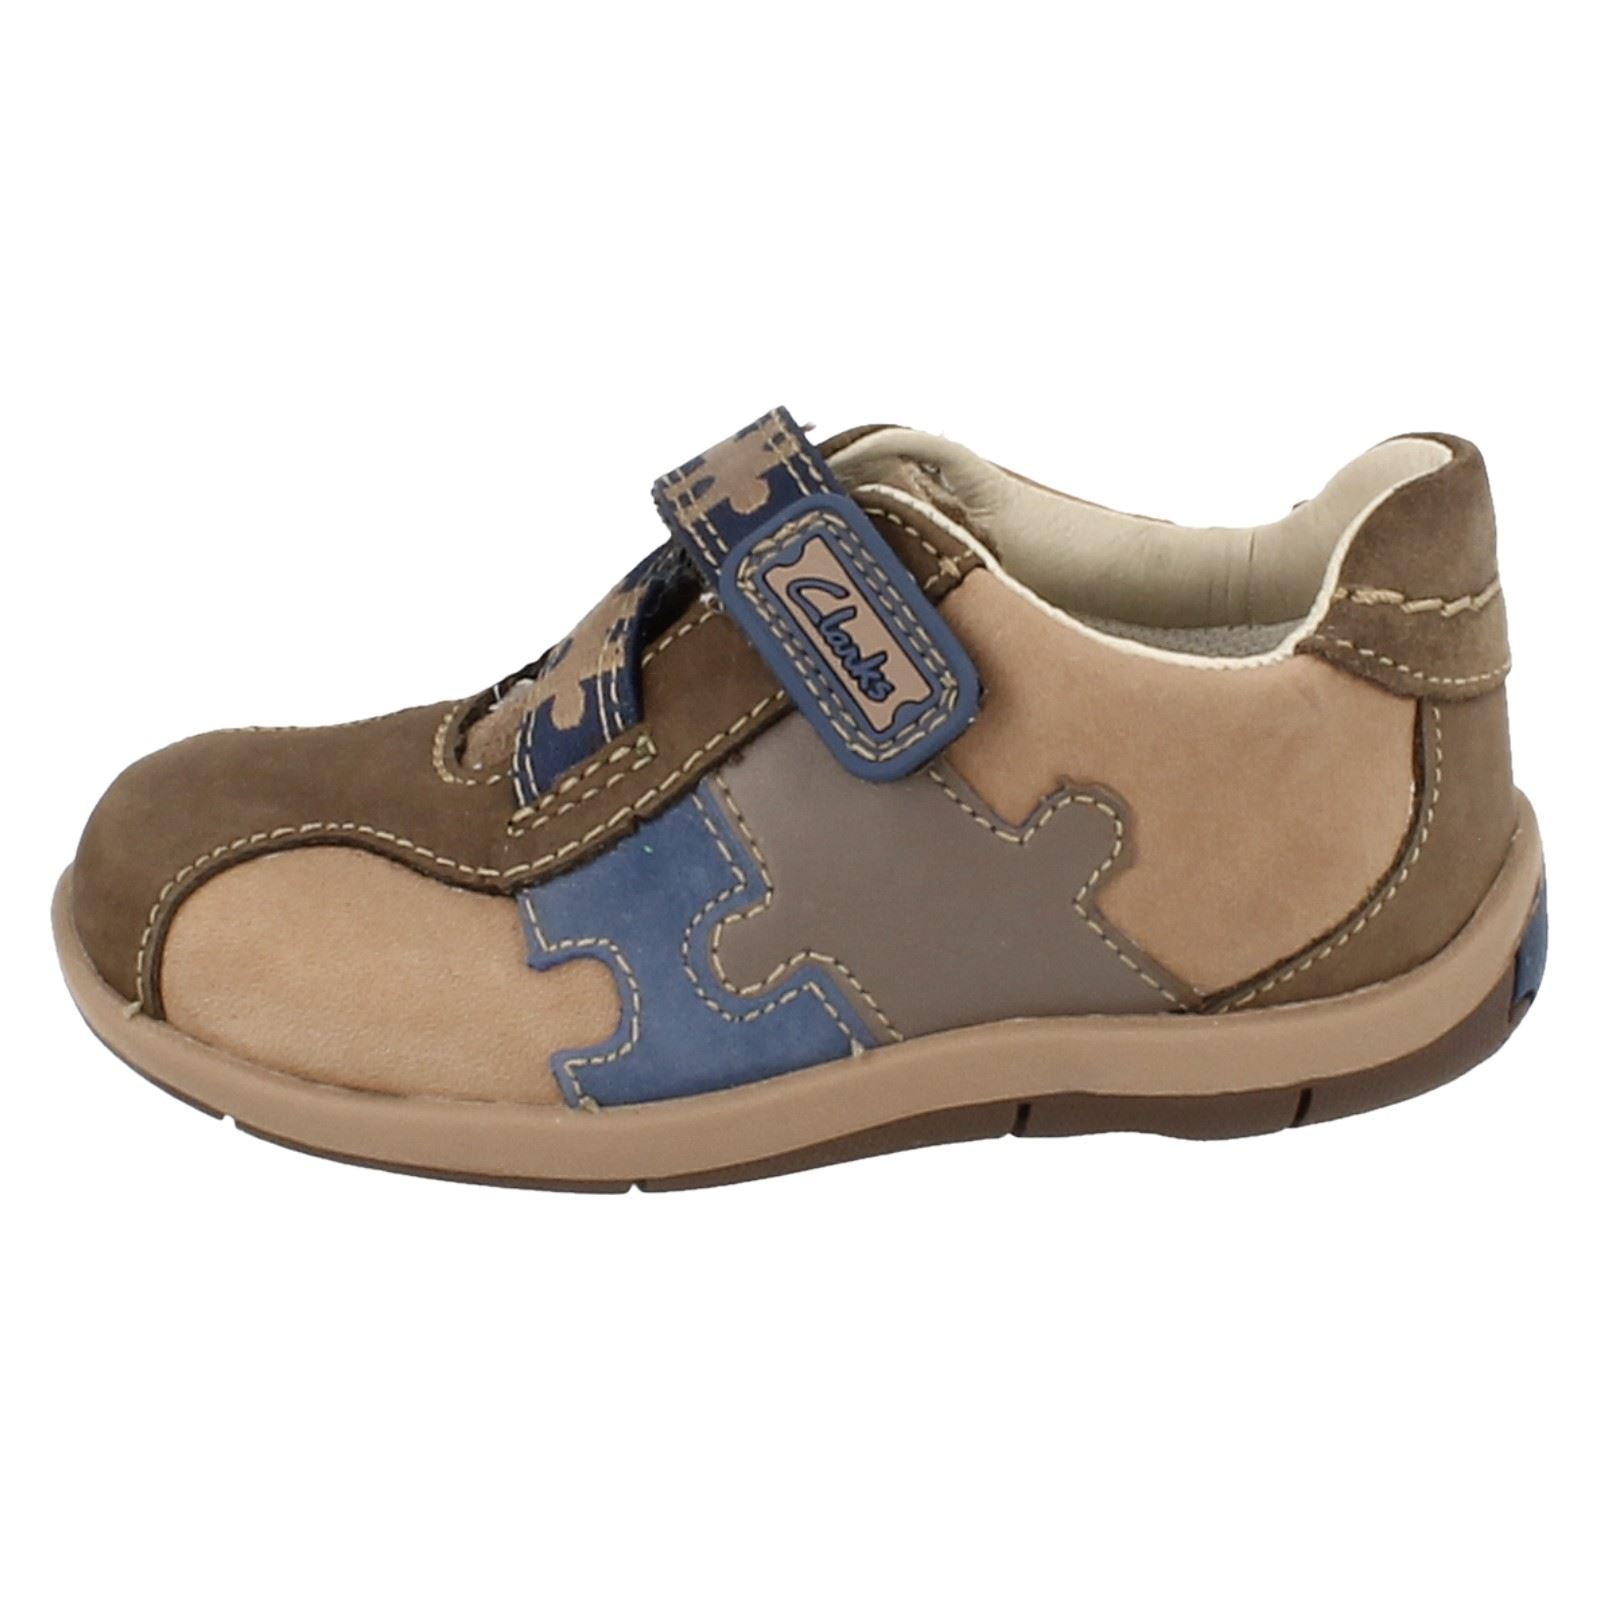 6f85f58173716 Boys Clarks First Shoes 'Plane Puzzle' | eBay